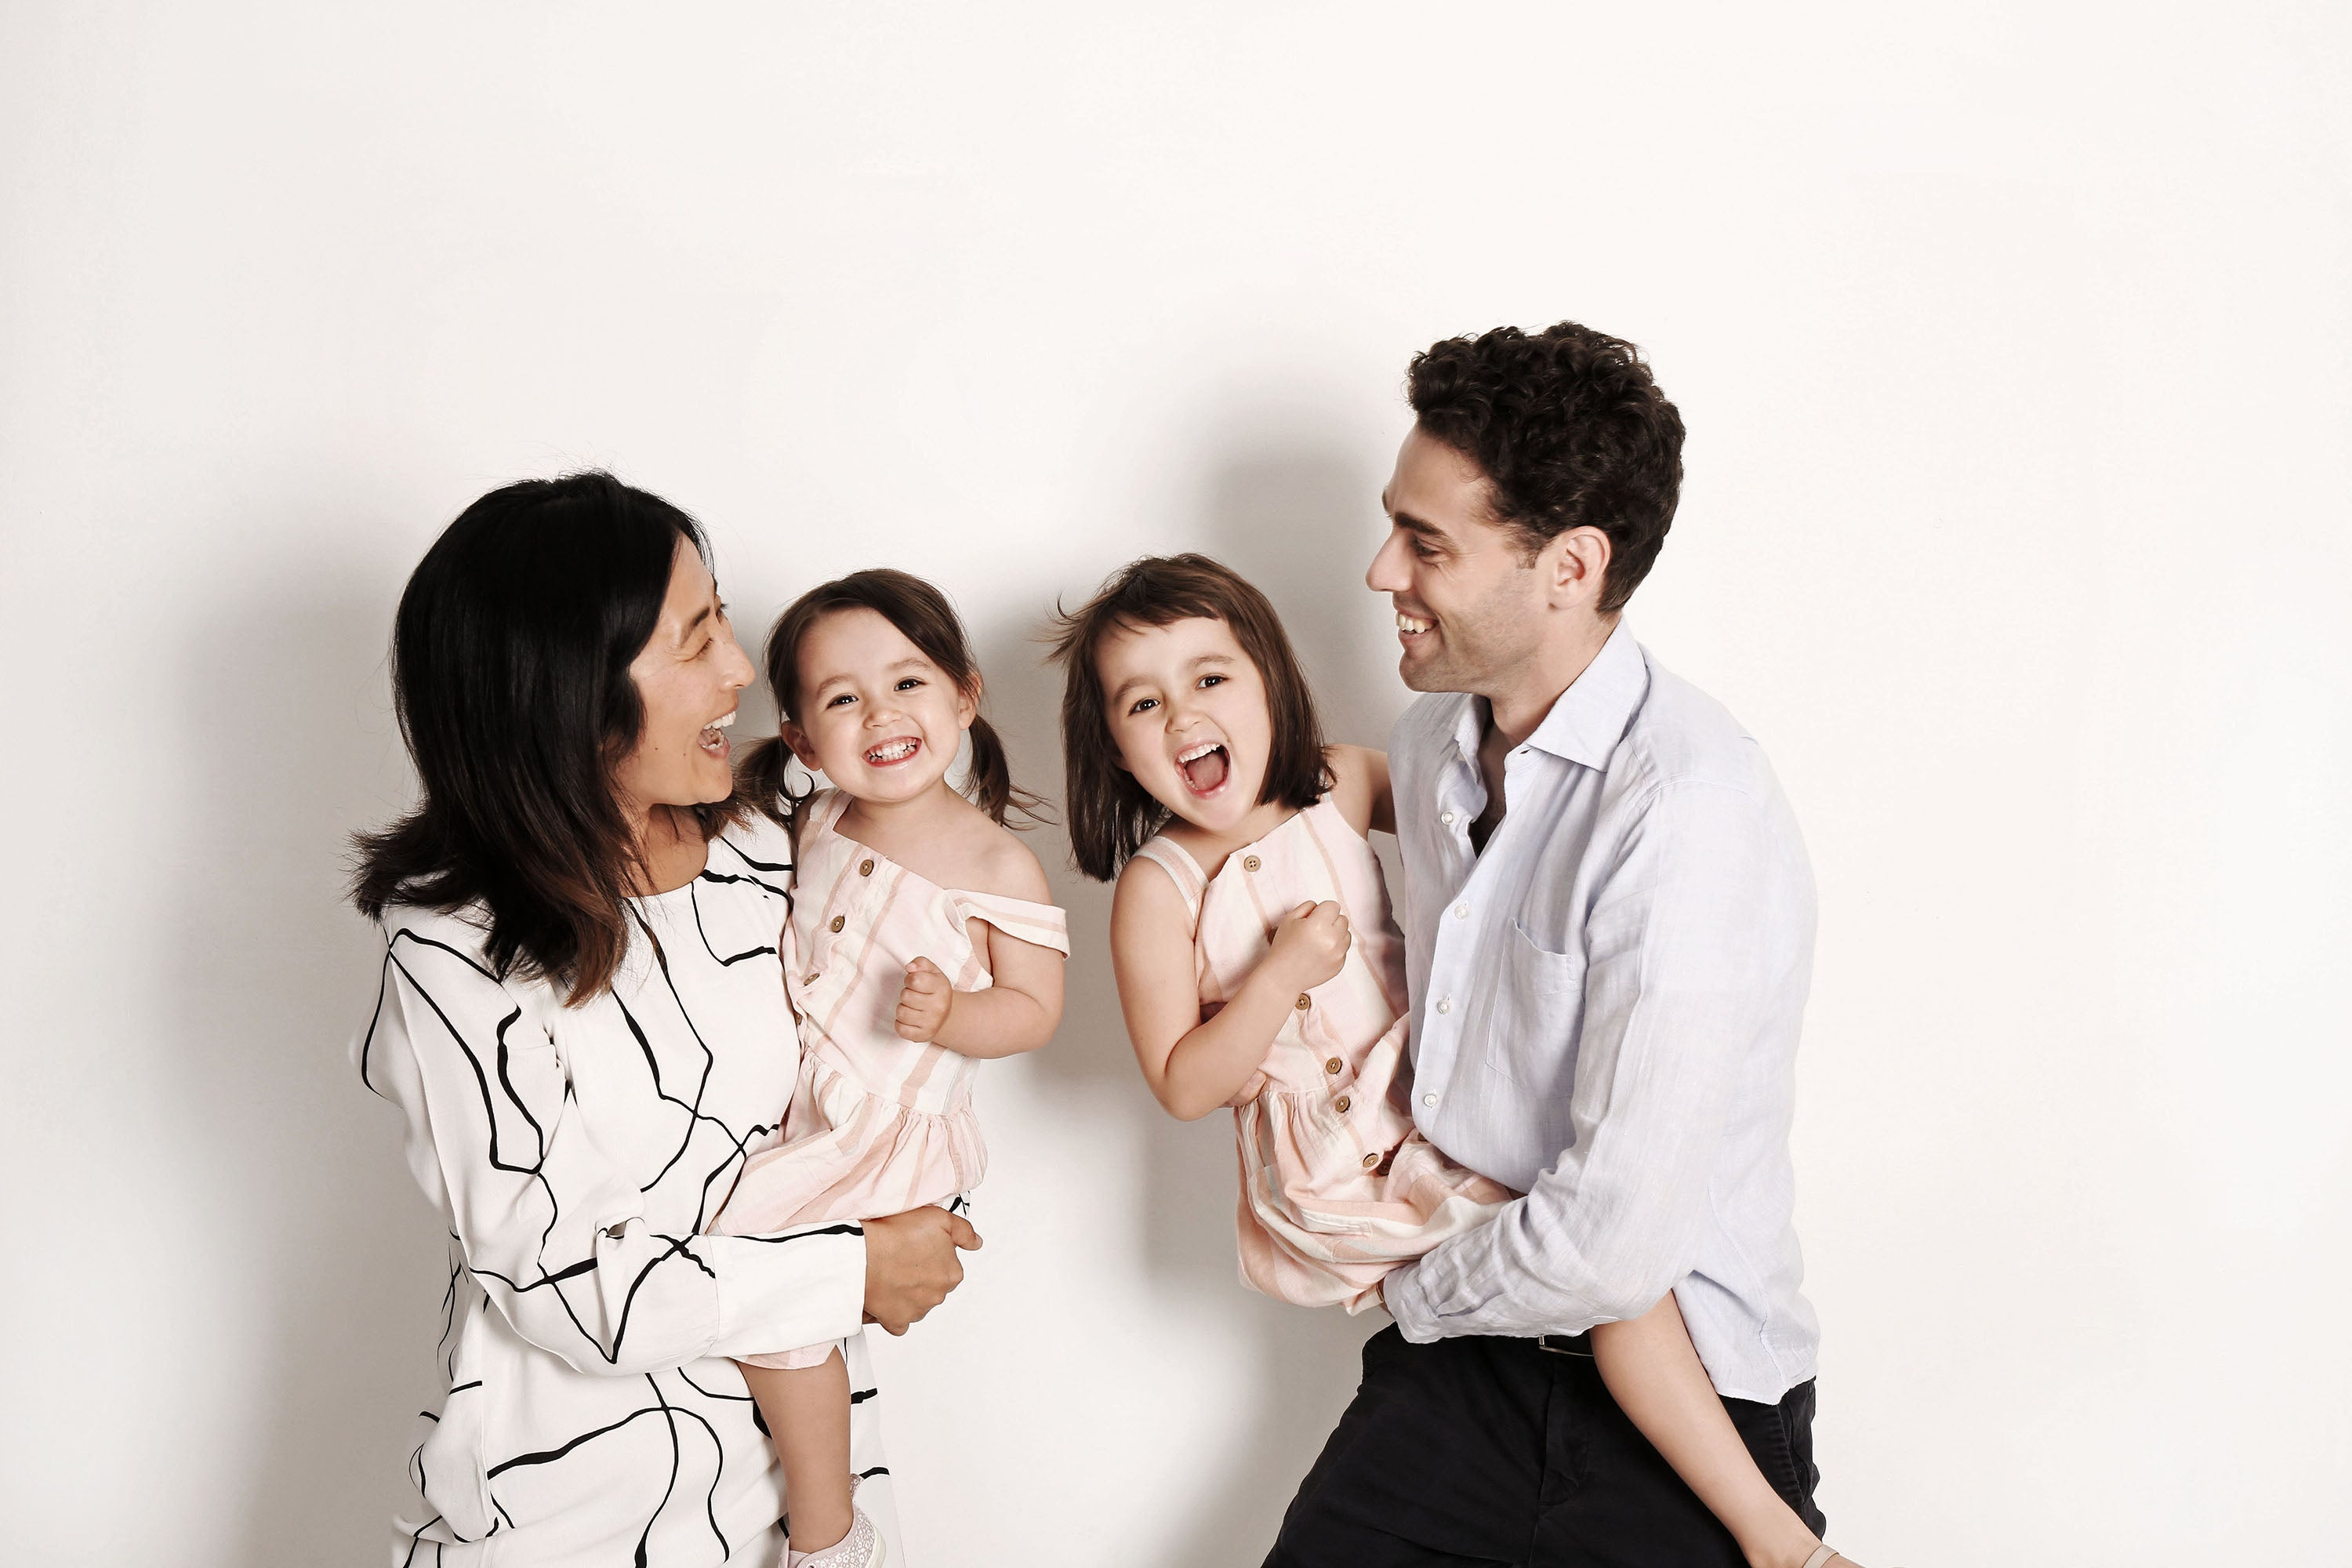 Asian female founder Jennie Gao with her husband and two daughters.